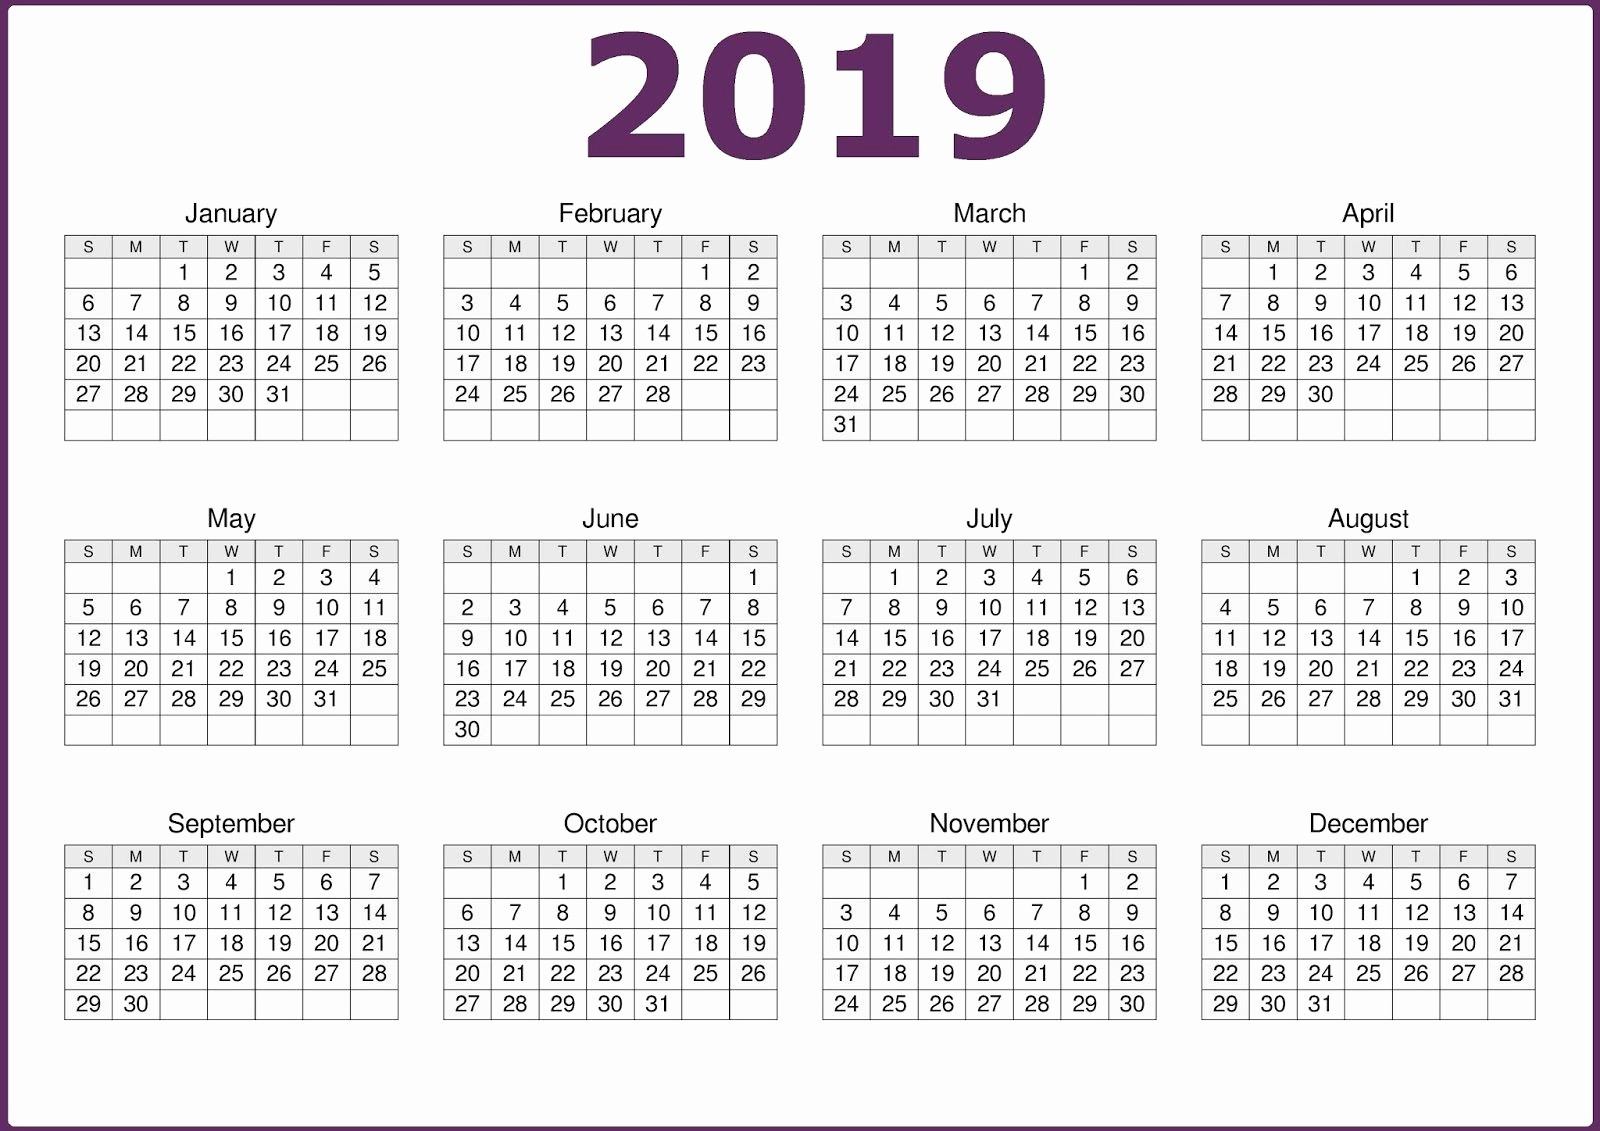 2019 Yearly Calendar One Page Fresh 2019 One Page 12 Months Calendar